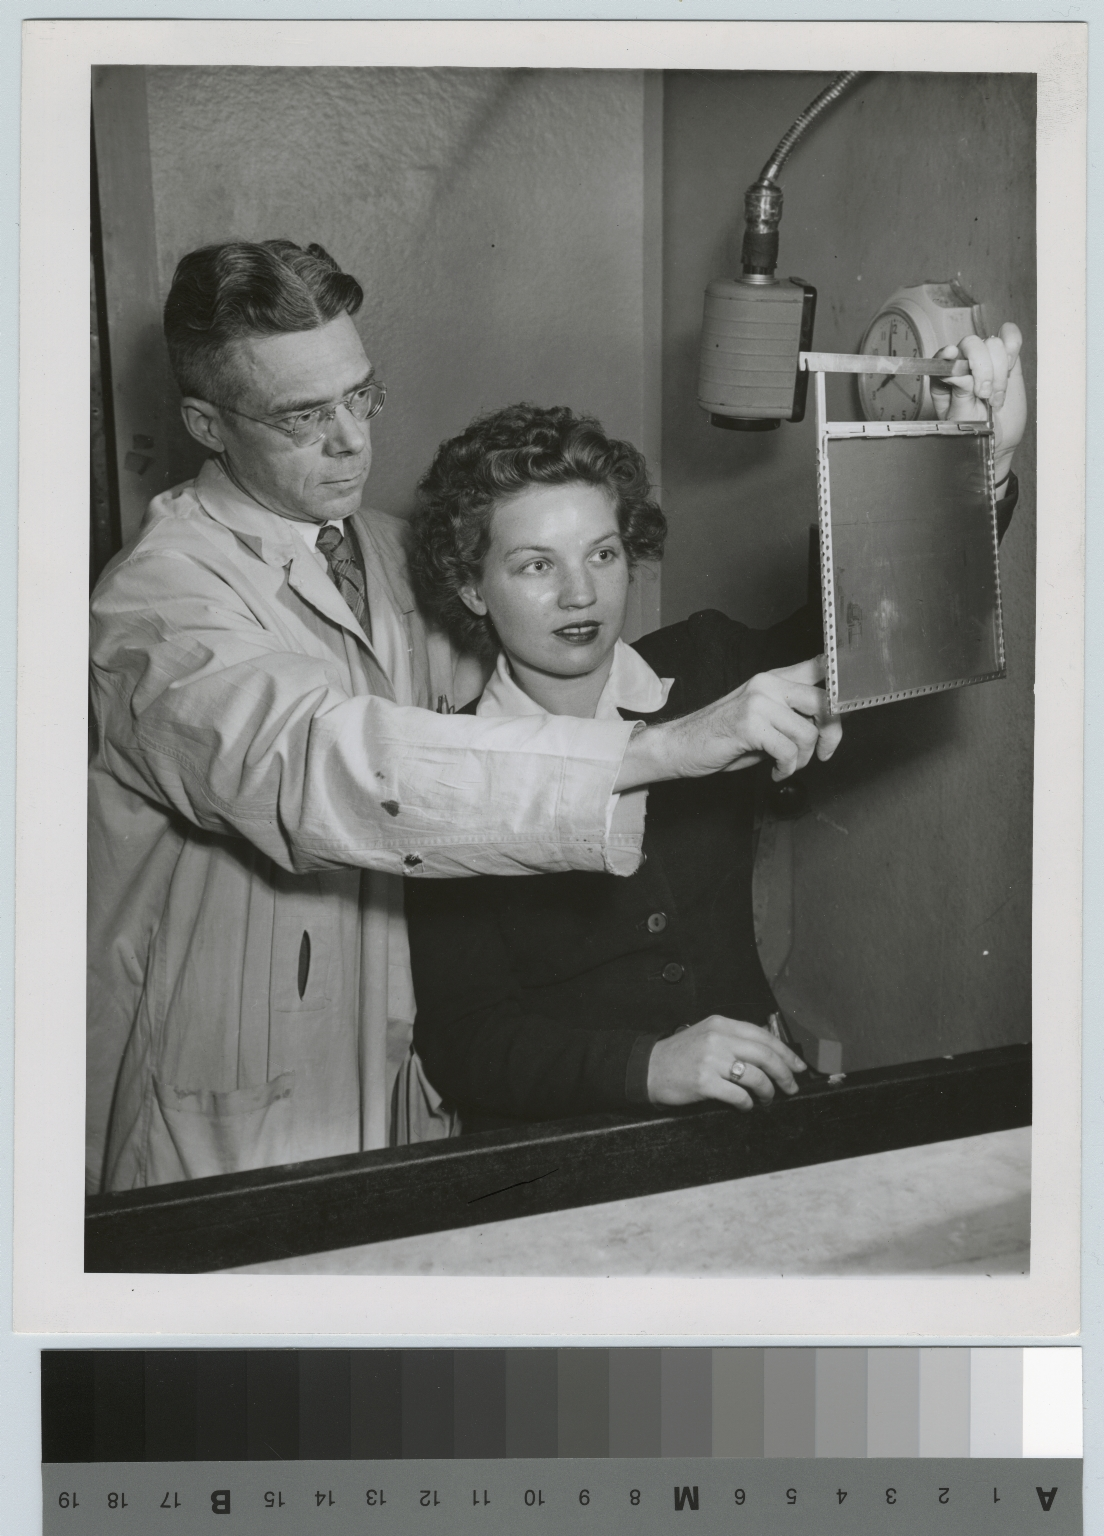 Carrol Neblette instructs student in the Department of Photographic Technology, Rochester Institute of Technology